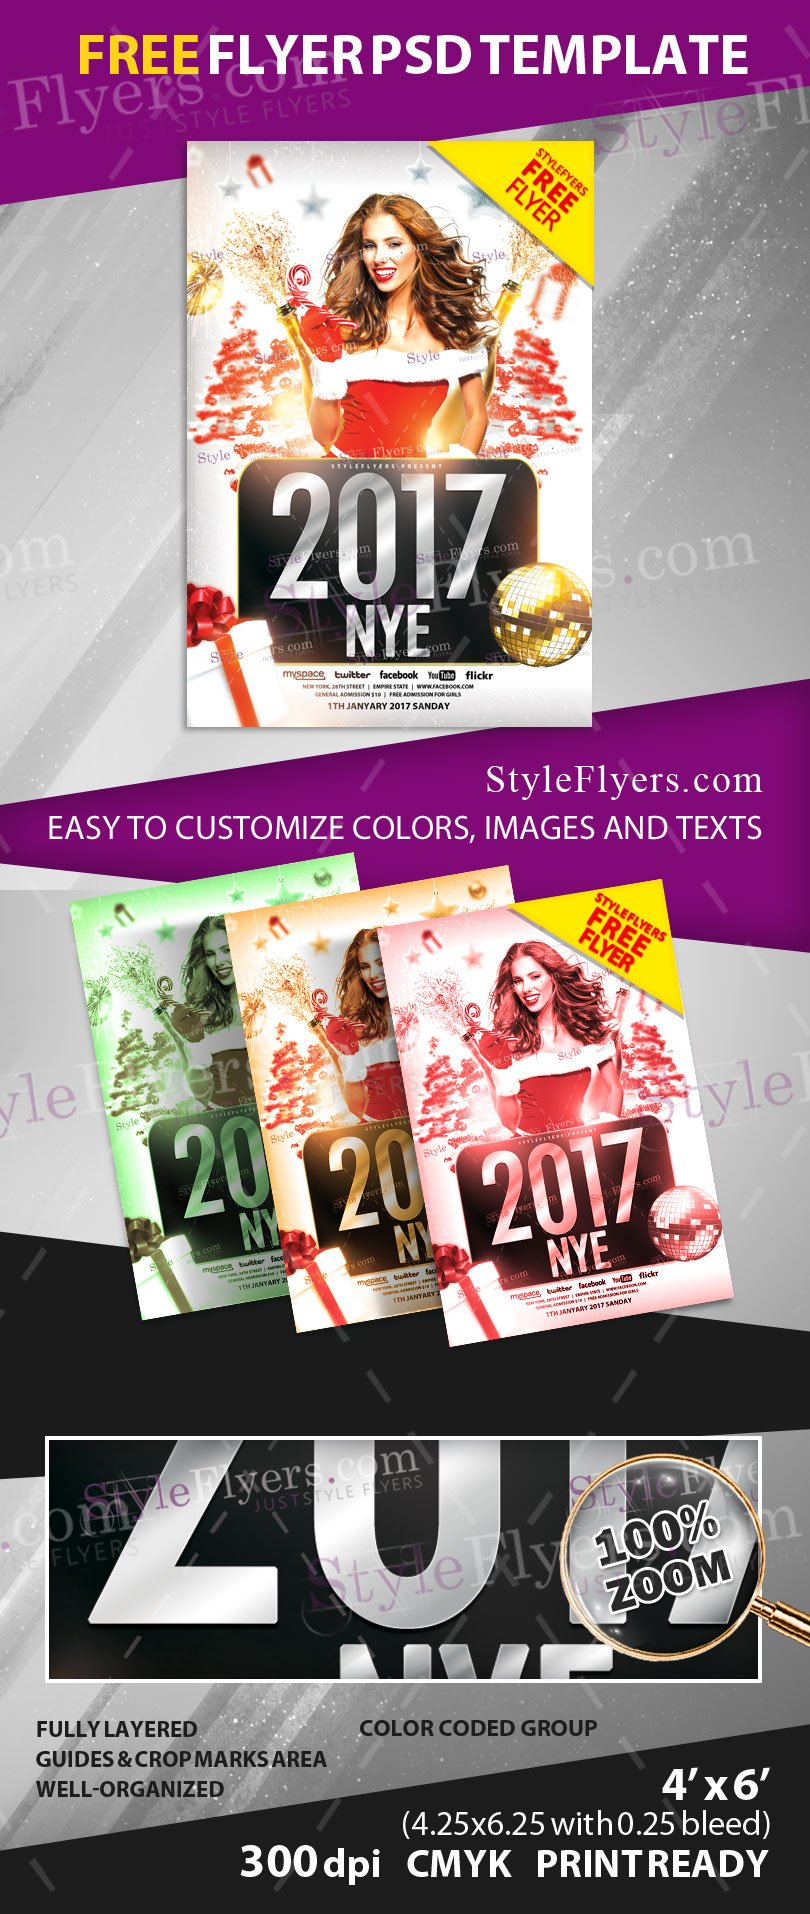 new psd flyer template styleflyers luxury flyer for your new year is done this time we think of those clients who just want to start our cooperating and about our loyal client who wants to